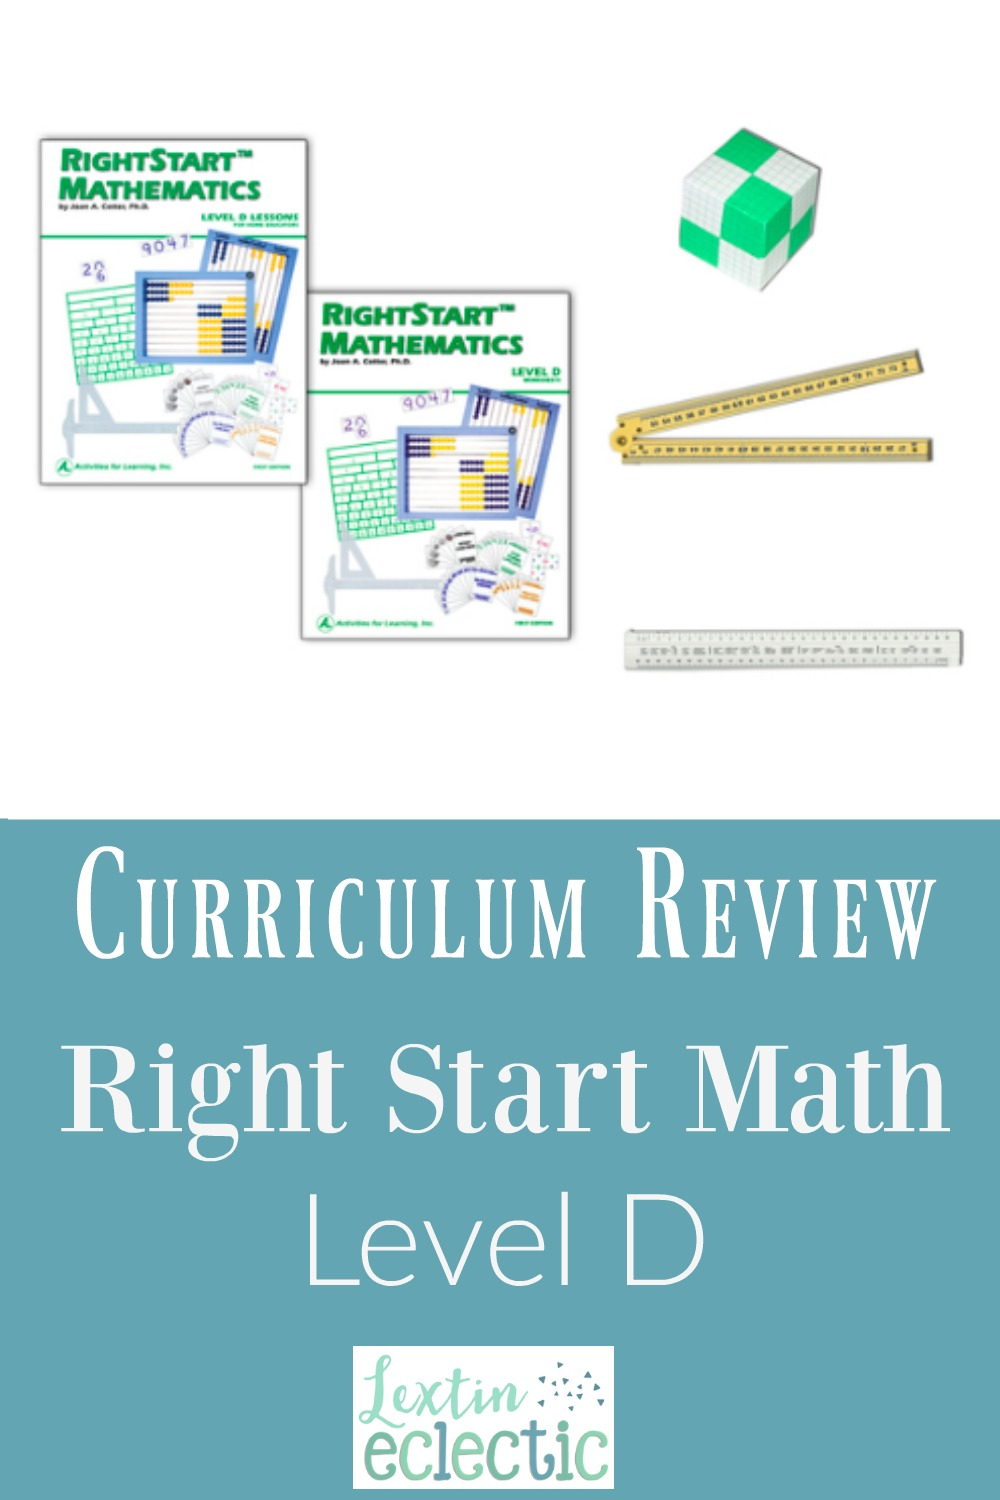 Curriculum Review} Right Start Math Level D - Lextin Eclectic